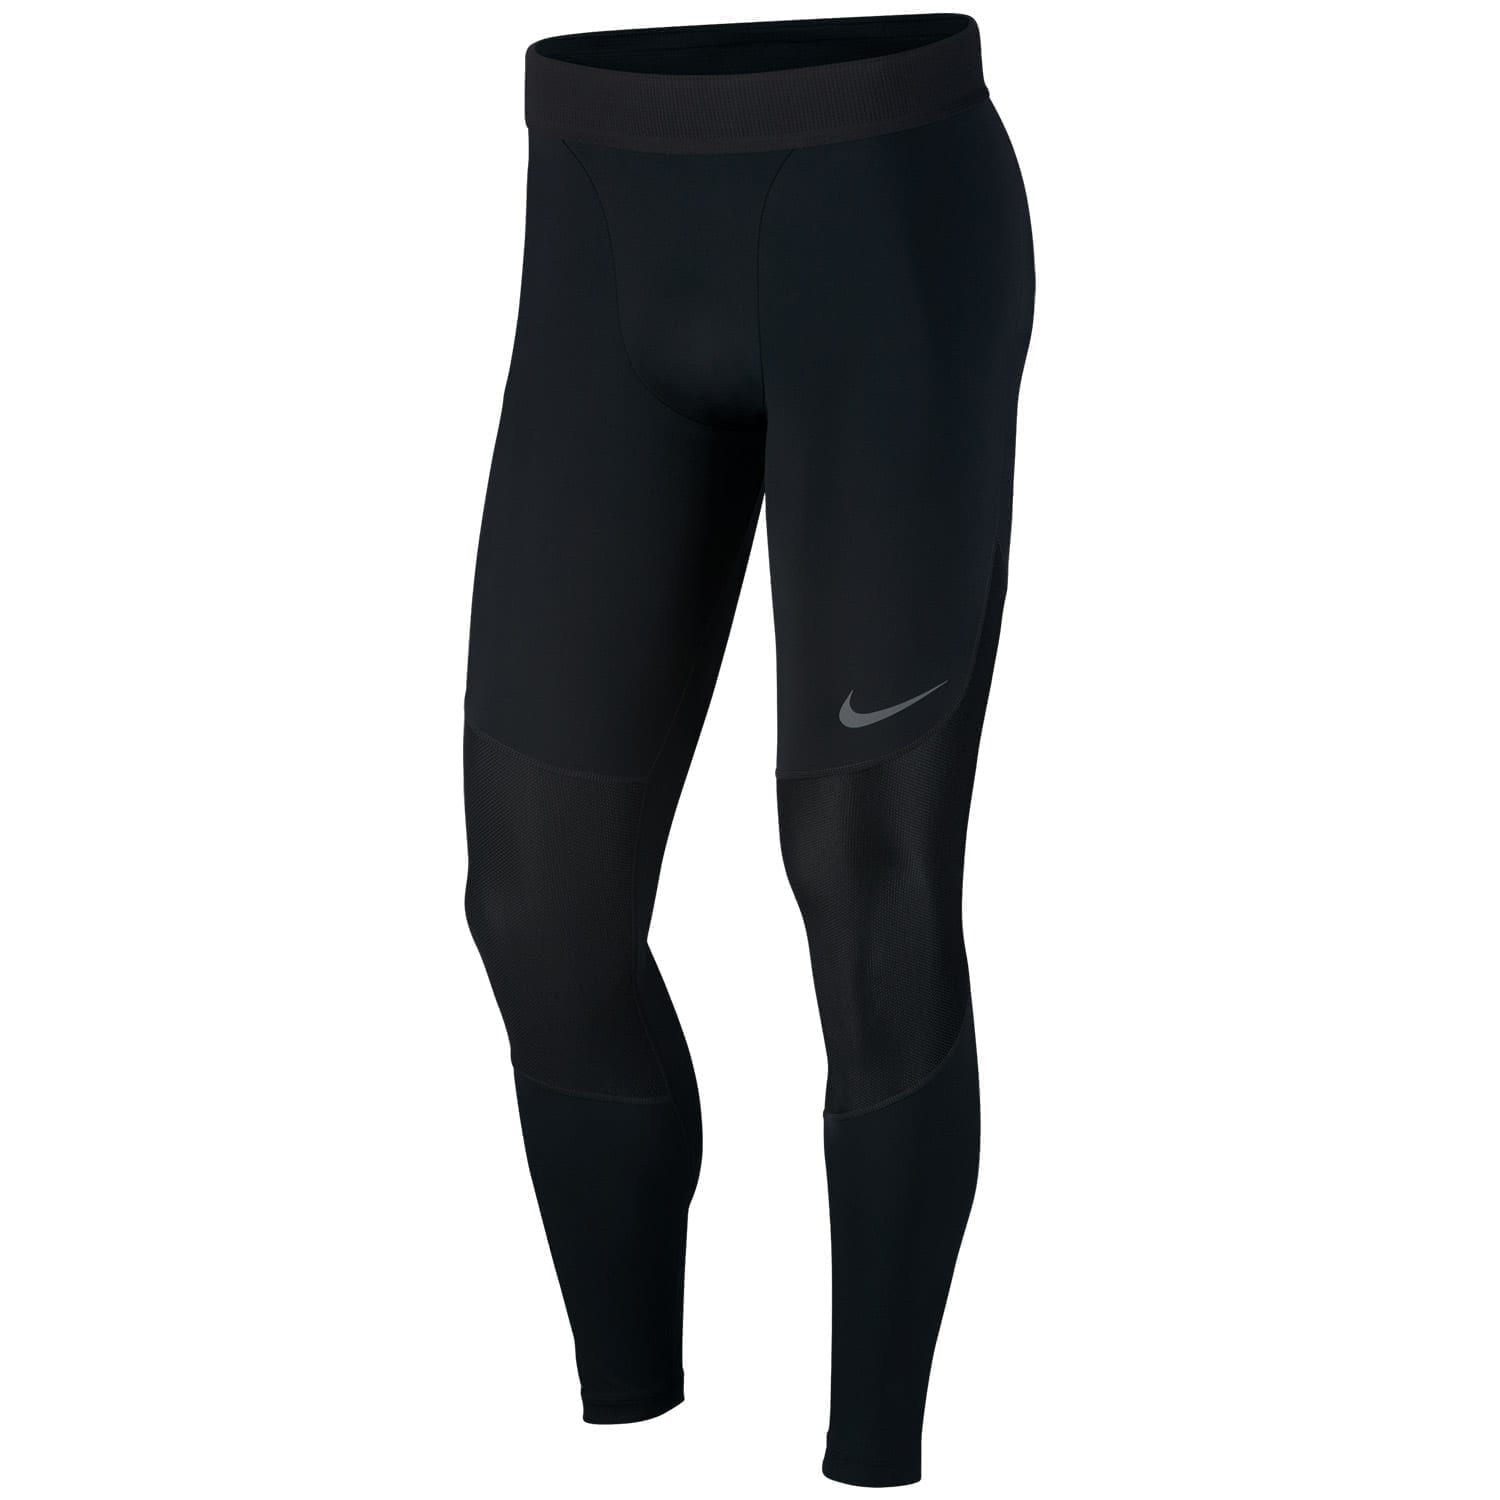 NIKE PROHerren-Tight